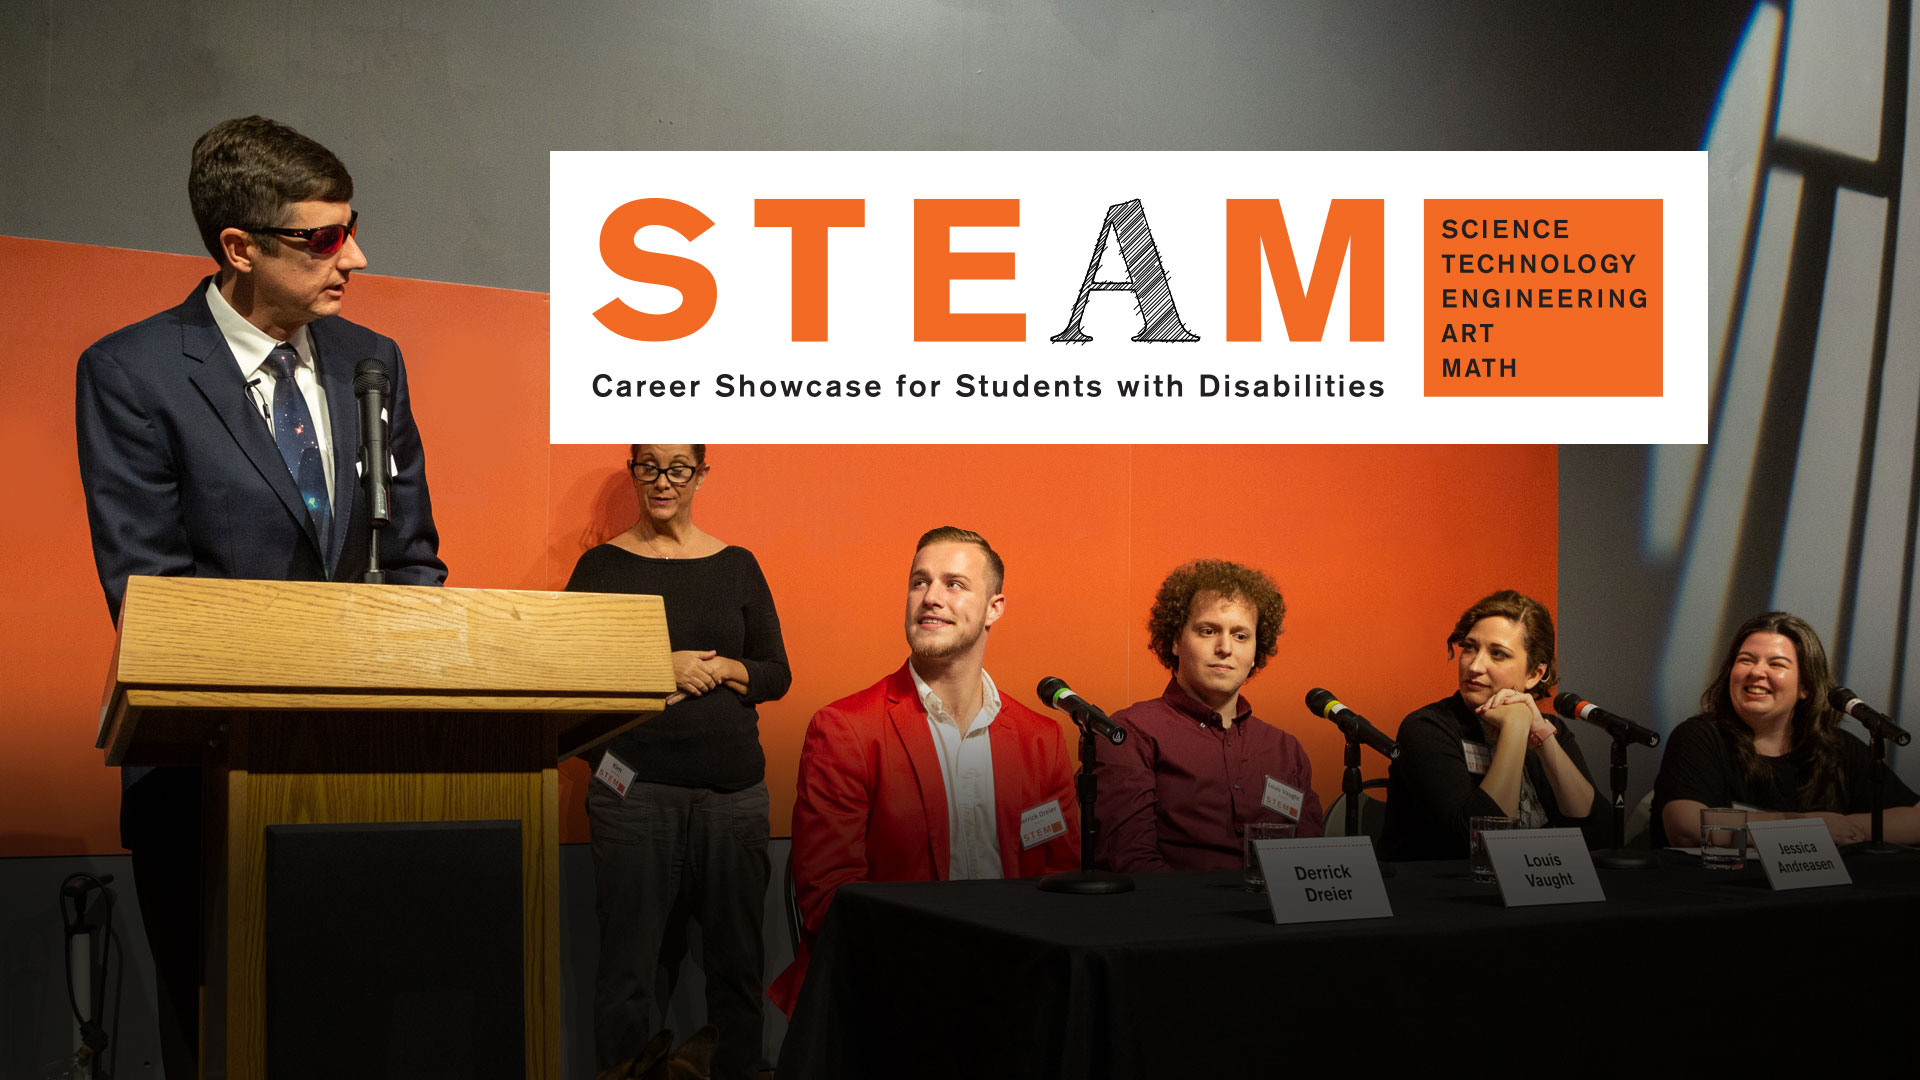 STEAM Career Showcase for Students with Disabilities